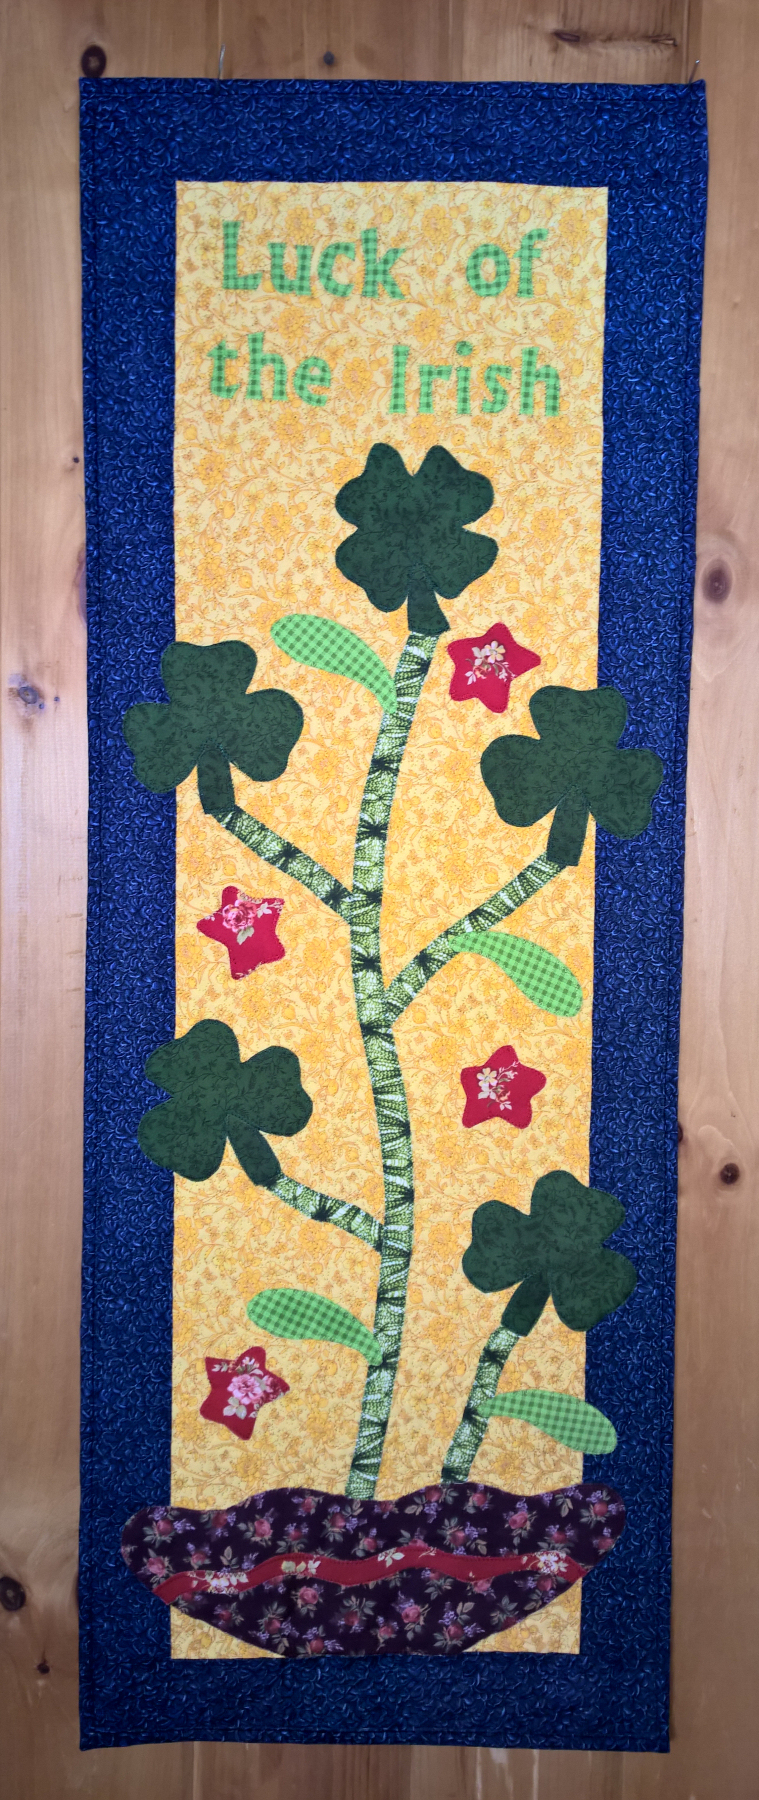 Luck of the Irish Table Runner